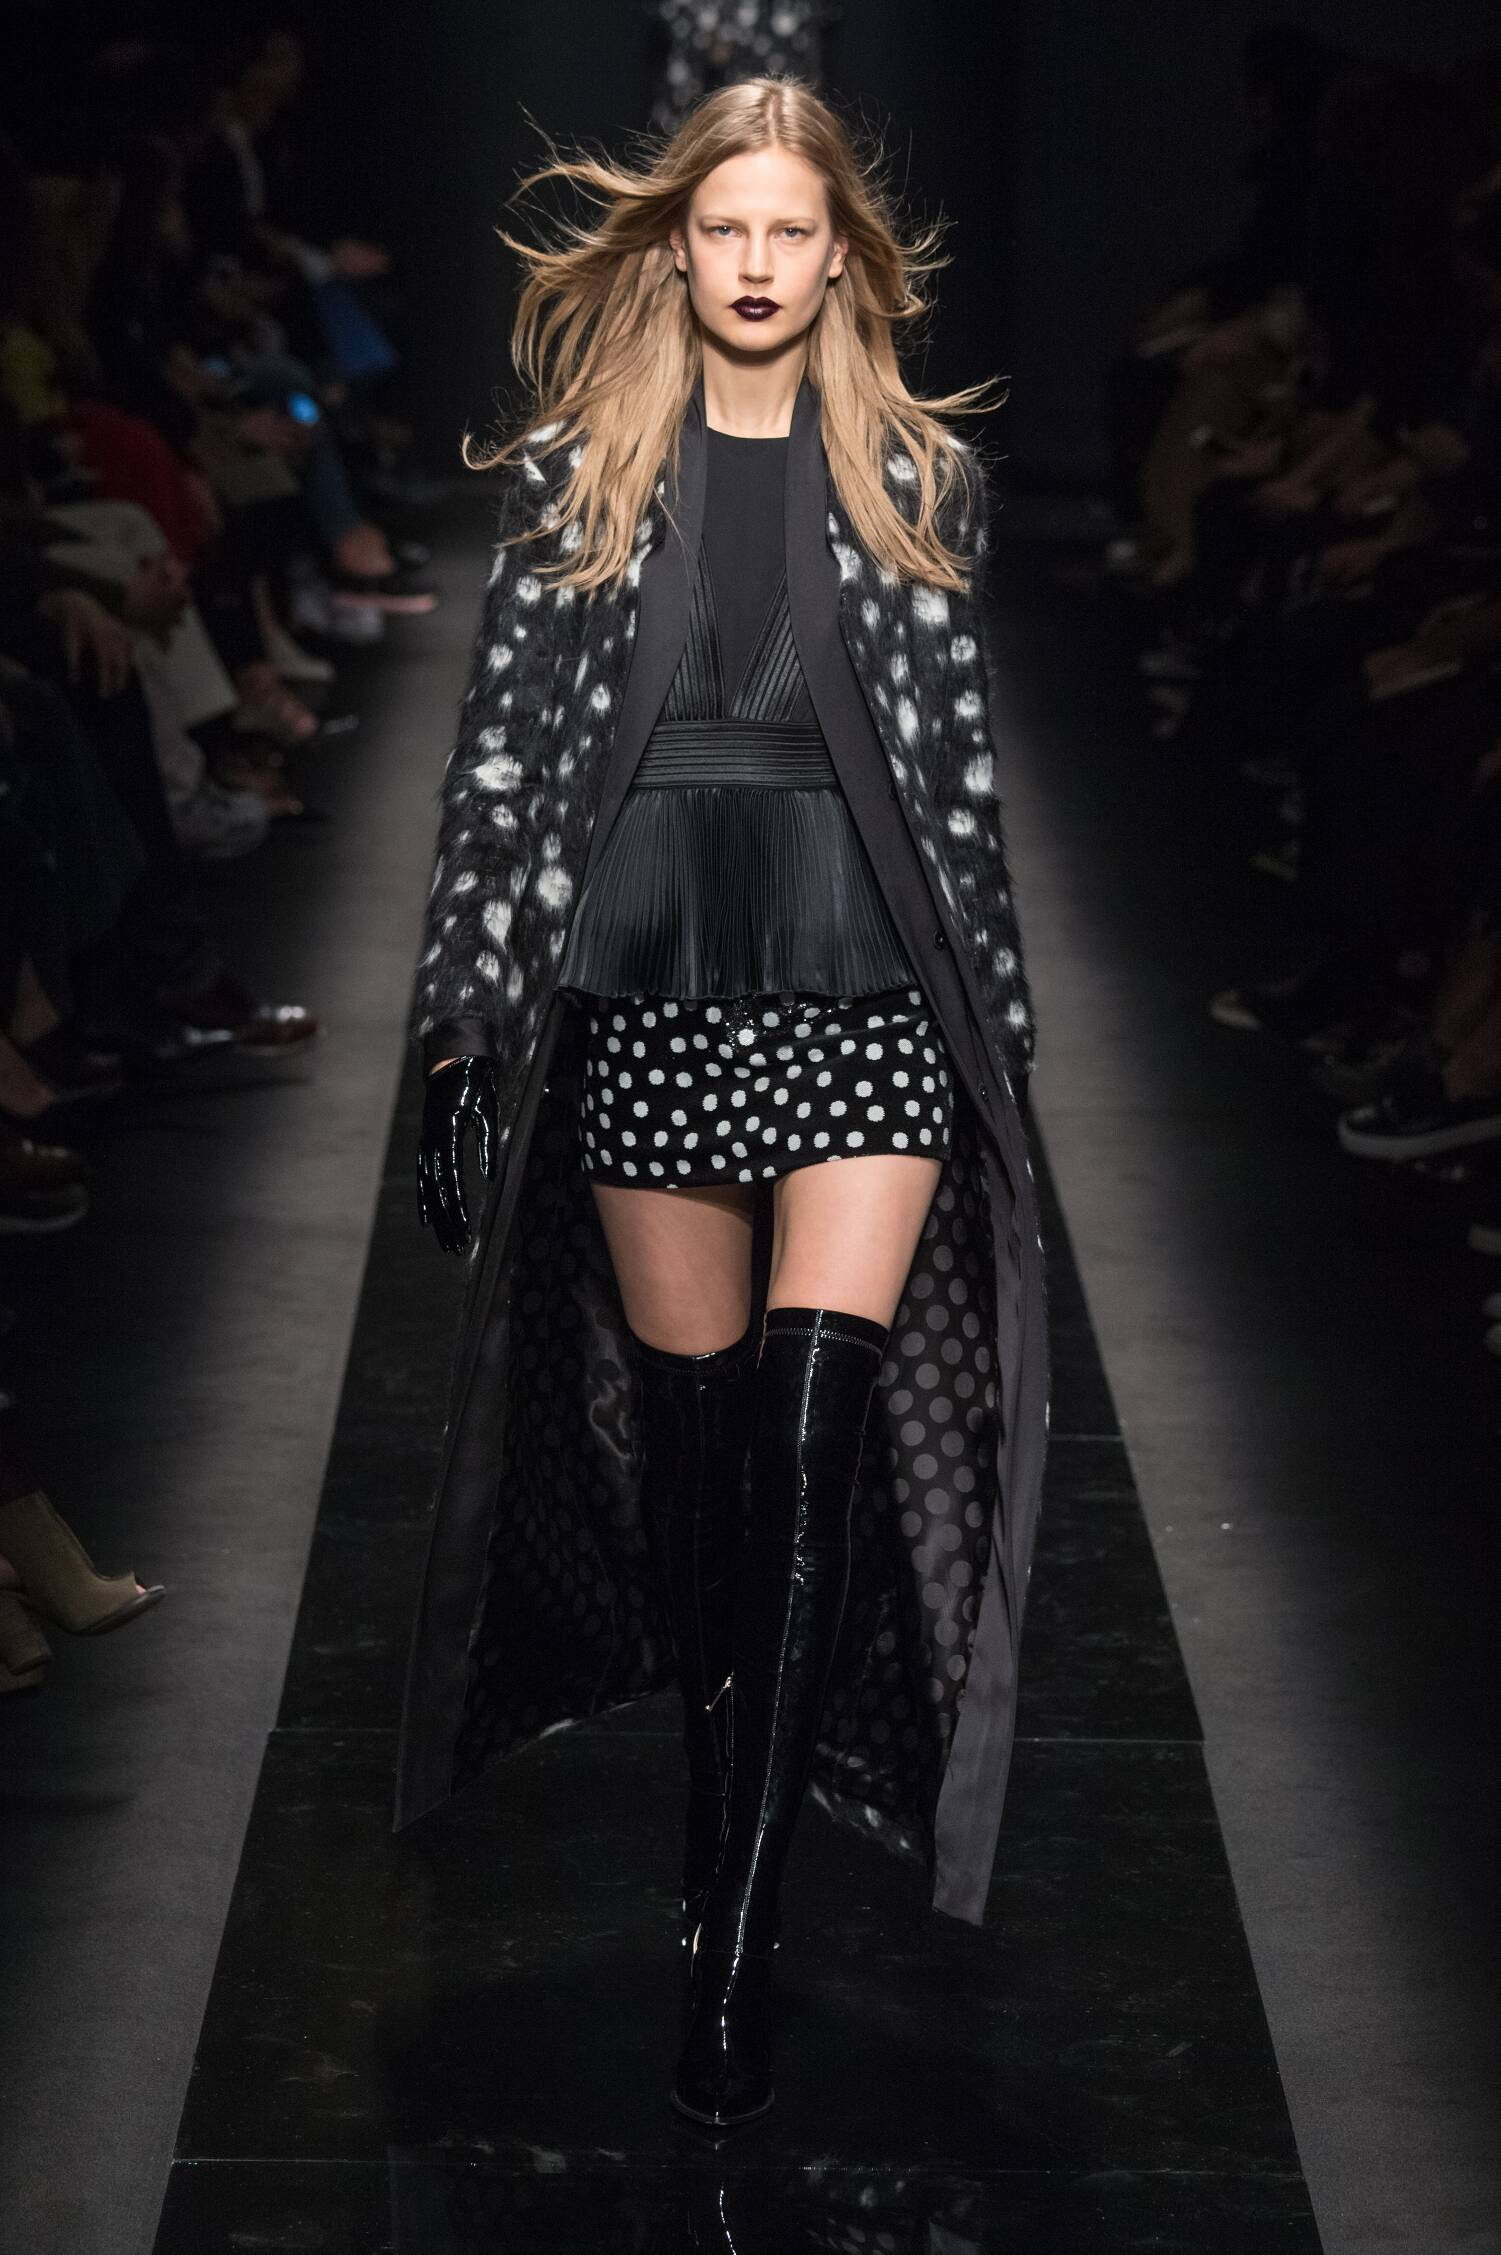 Catwalk Emanuel Ungaro Collection Fashion Show Winter 2015